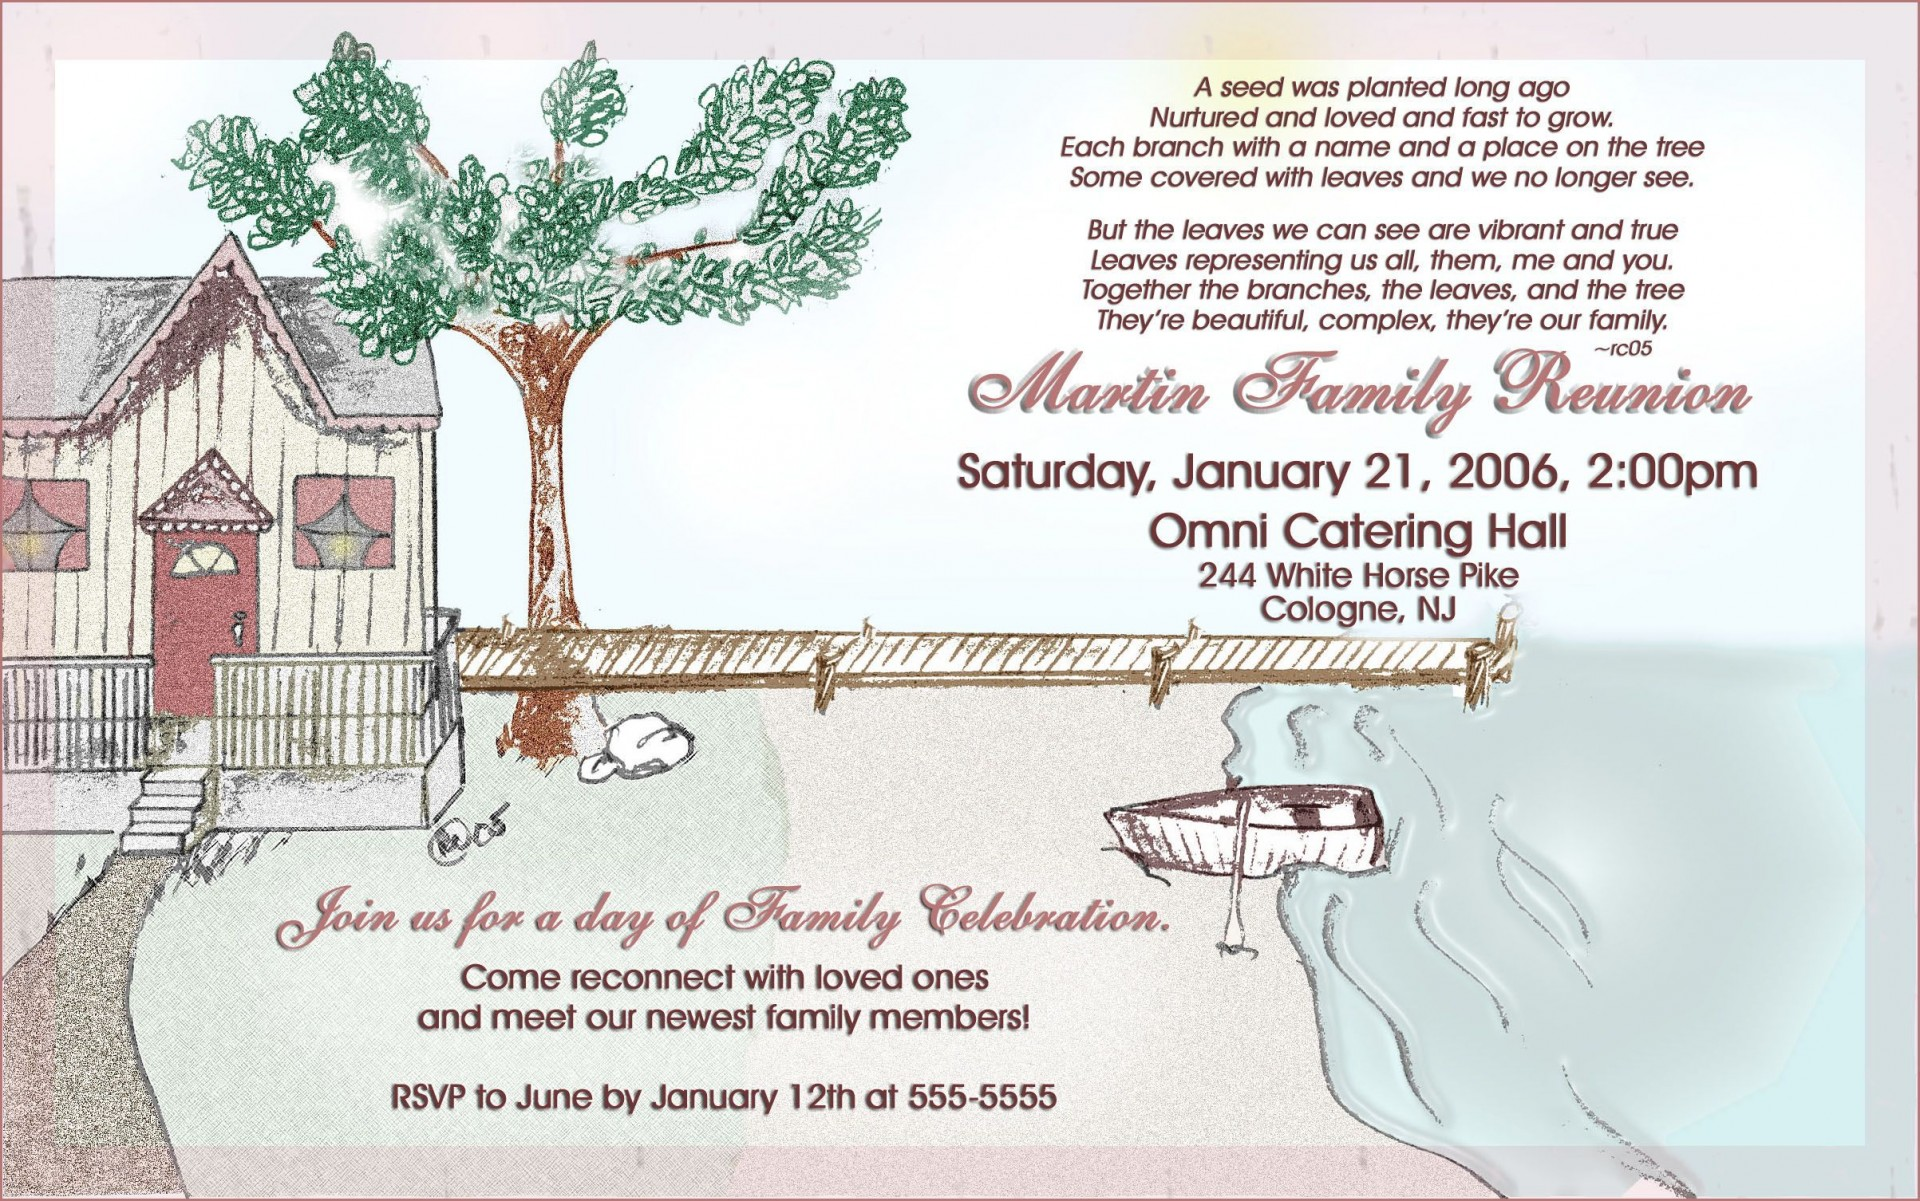 004 Exceptional Family Reunion Invitation Template Free Concept  For Word Online1920